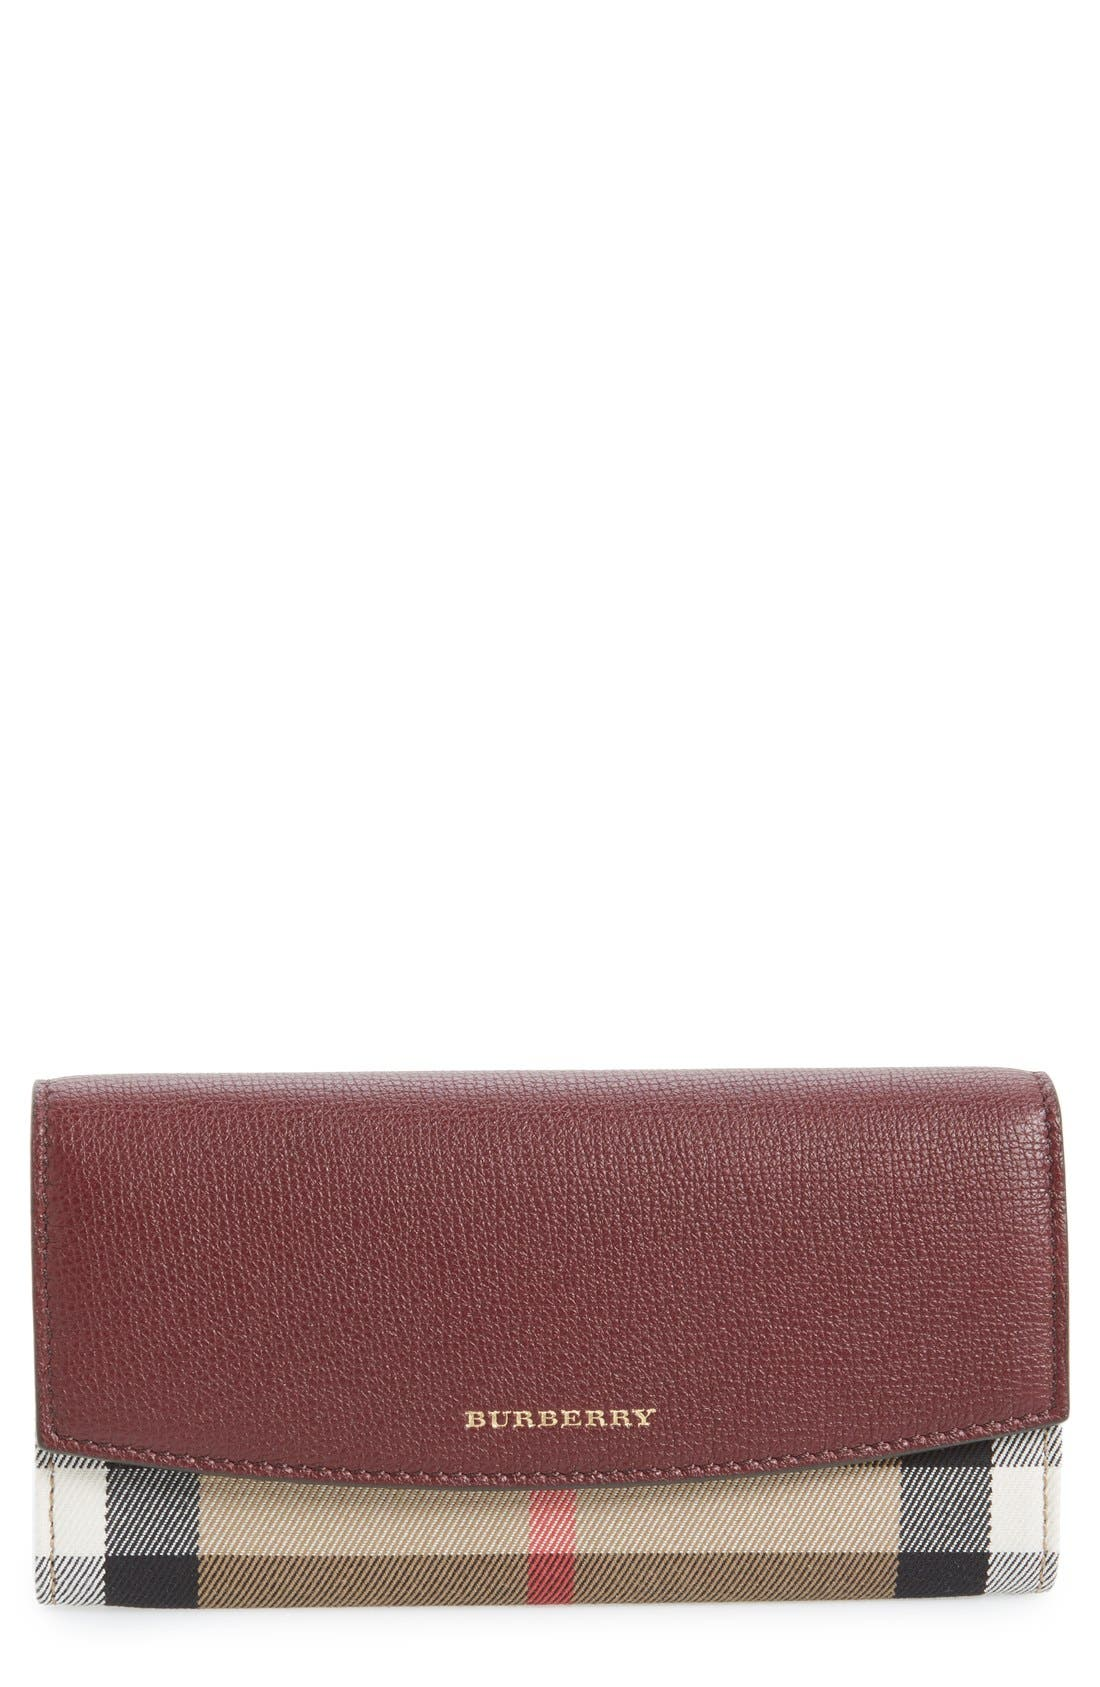 Alternate Image 1 Selected - Burberry 'Porter - Check' Continental Wallet